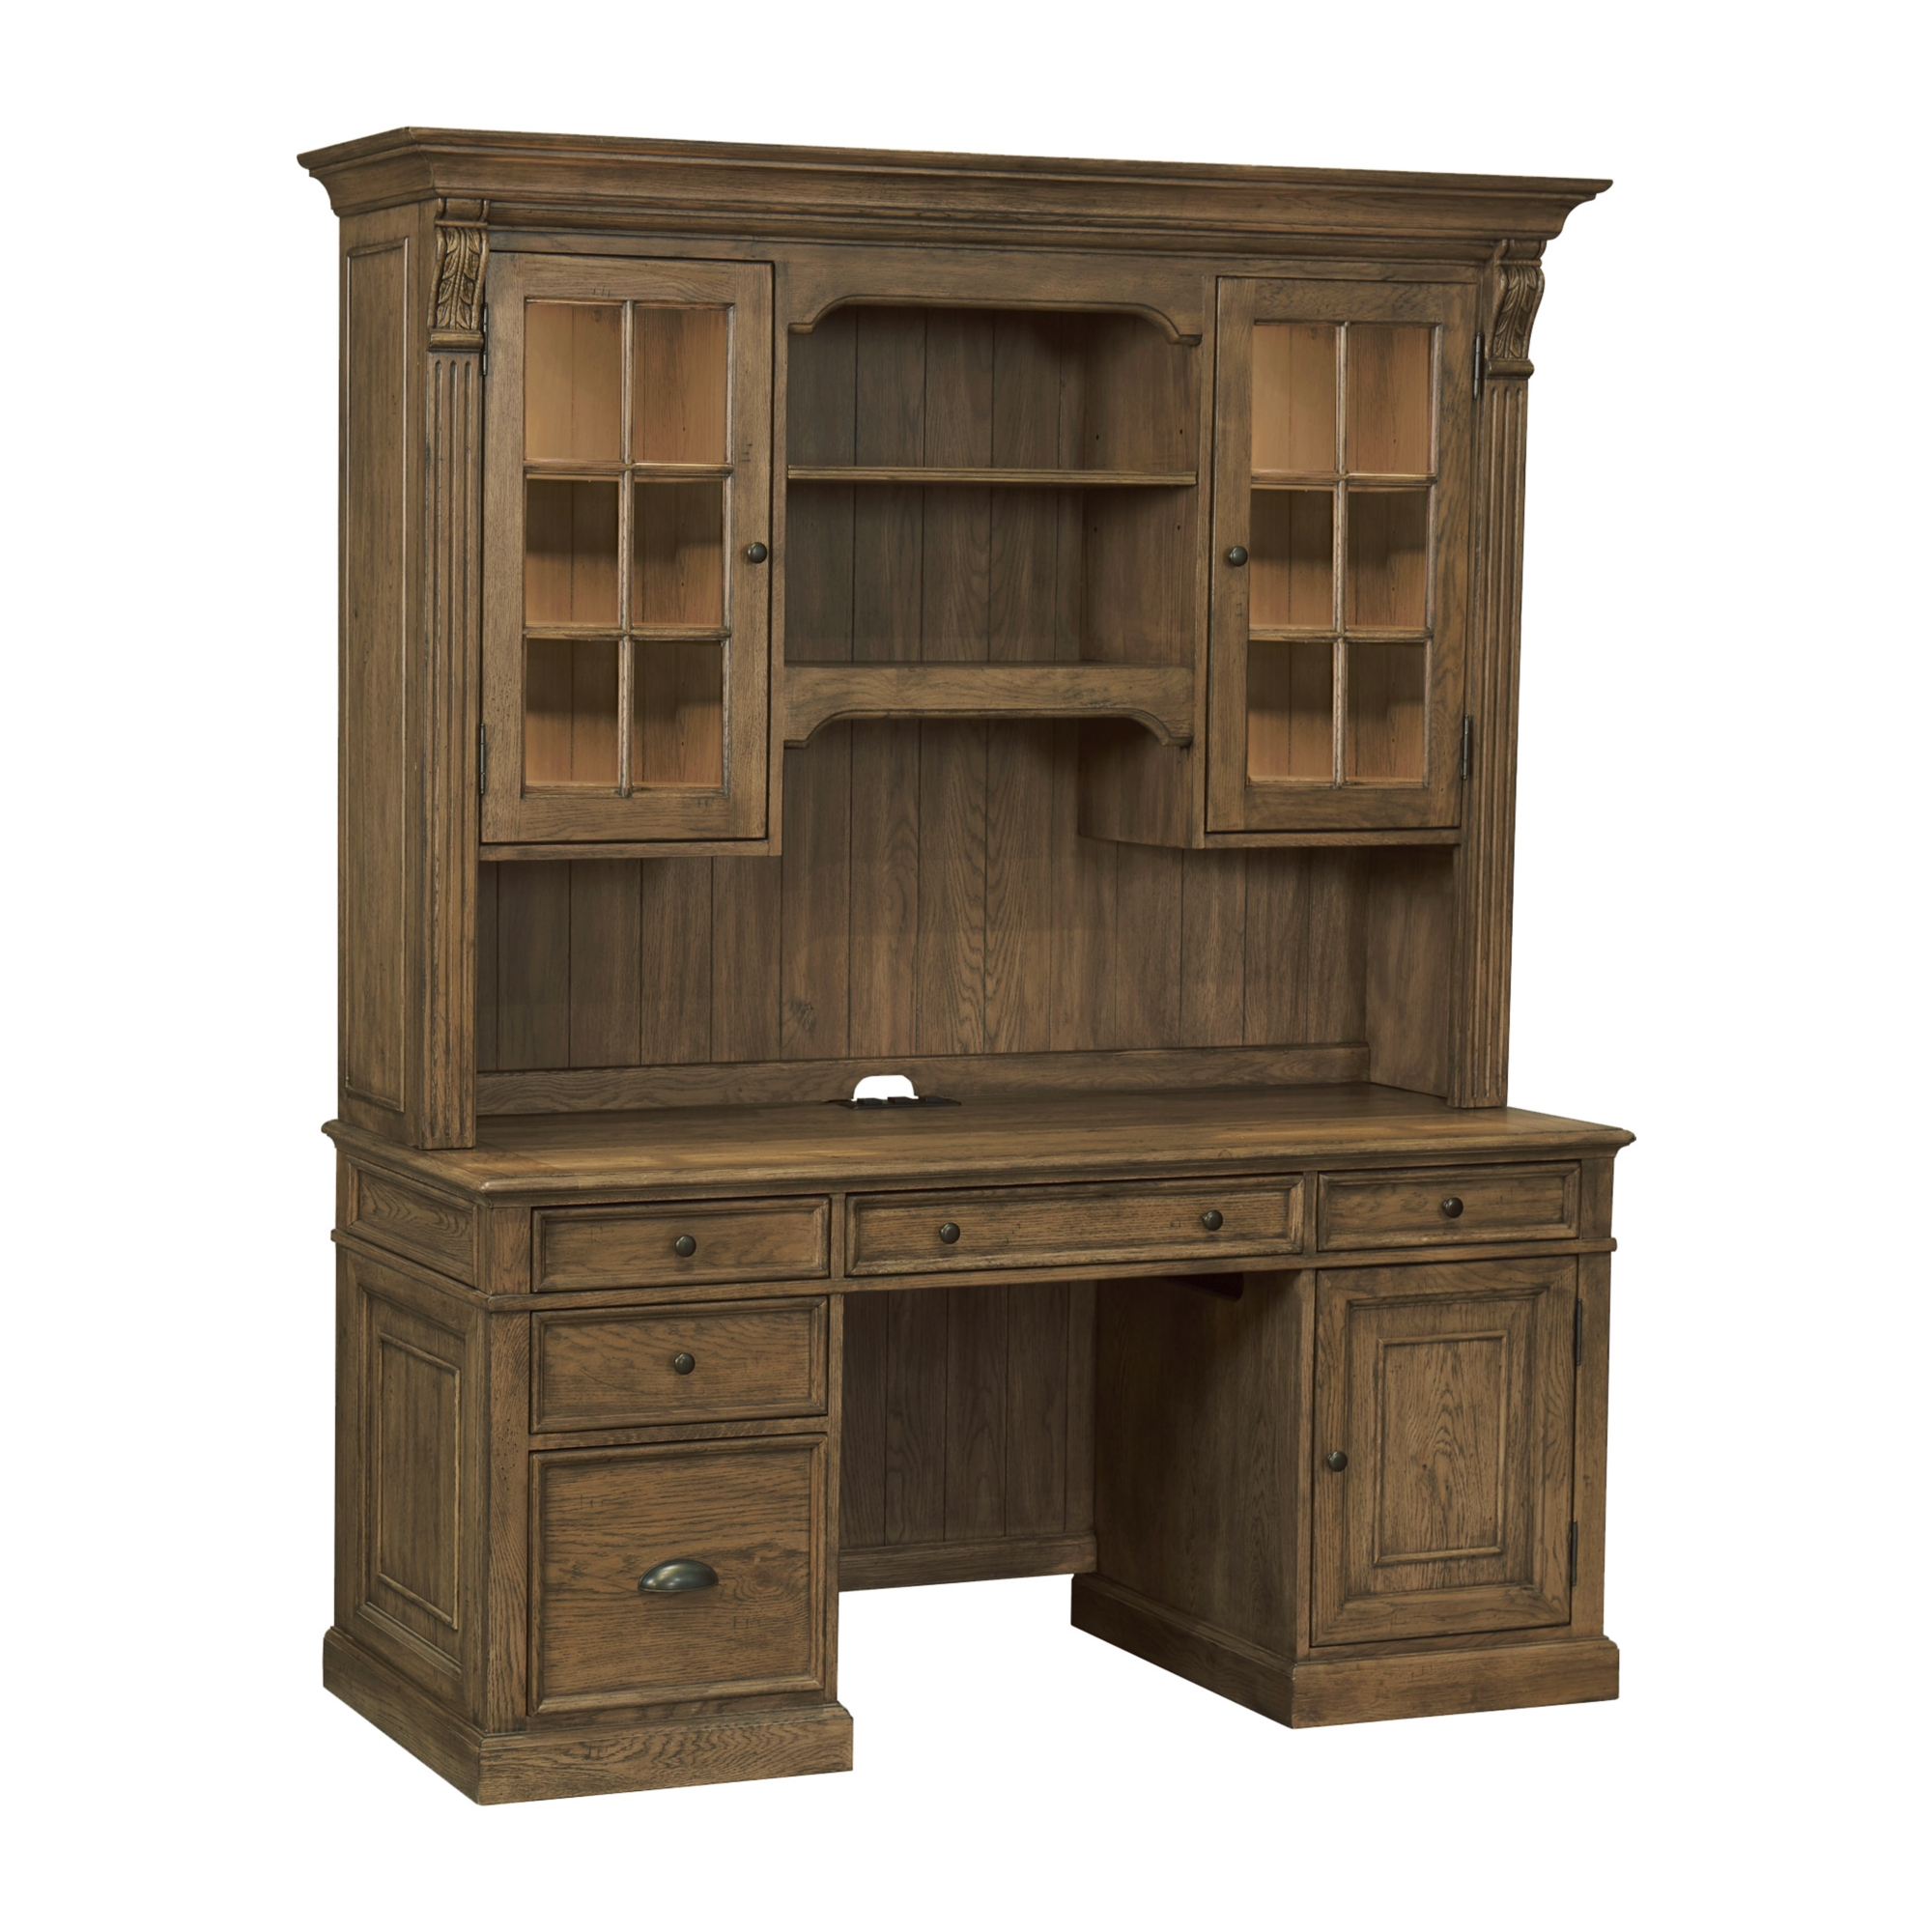 Main Avondale Desk With Hutch Image